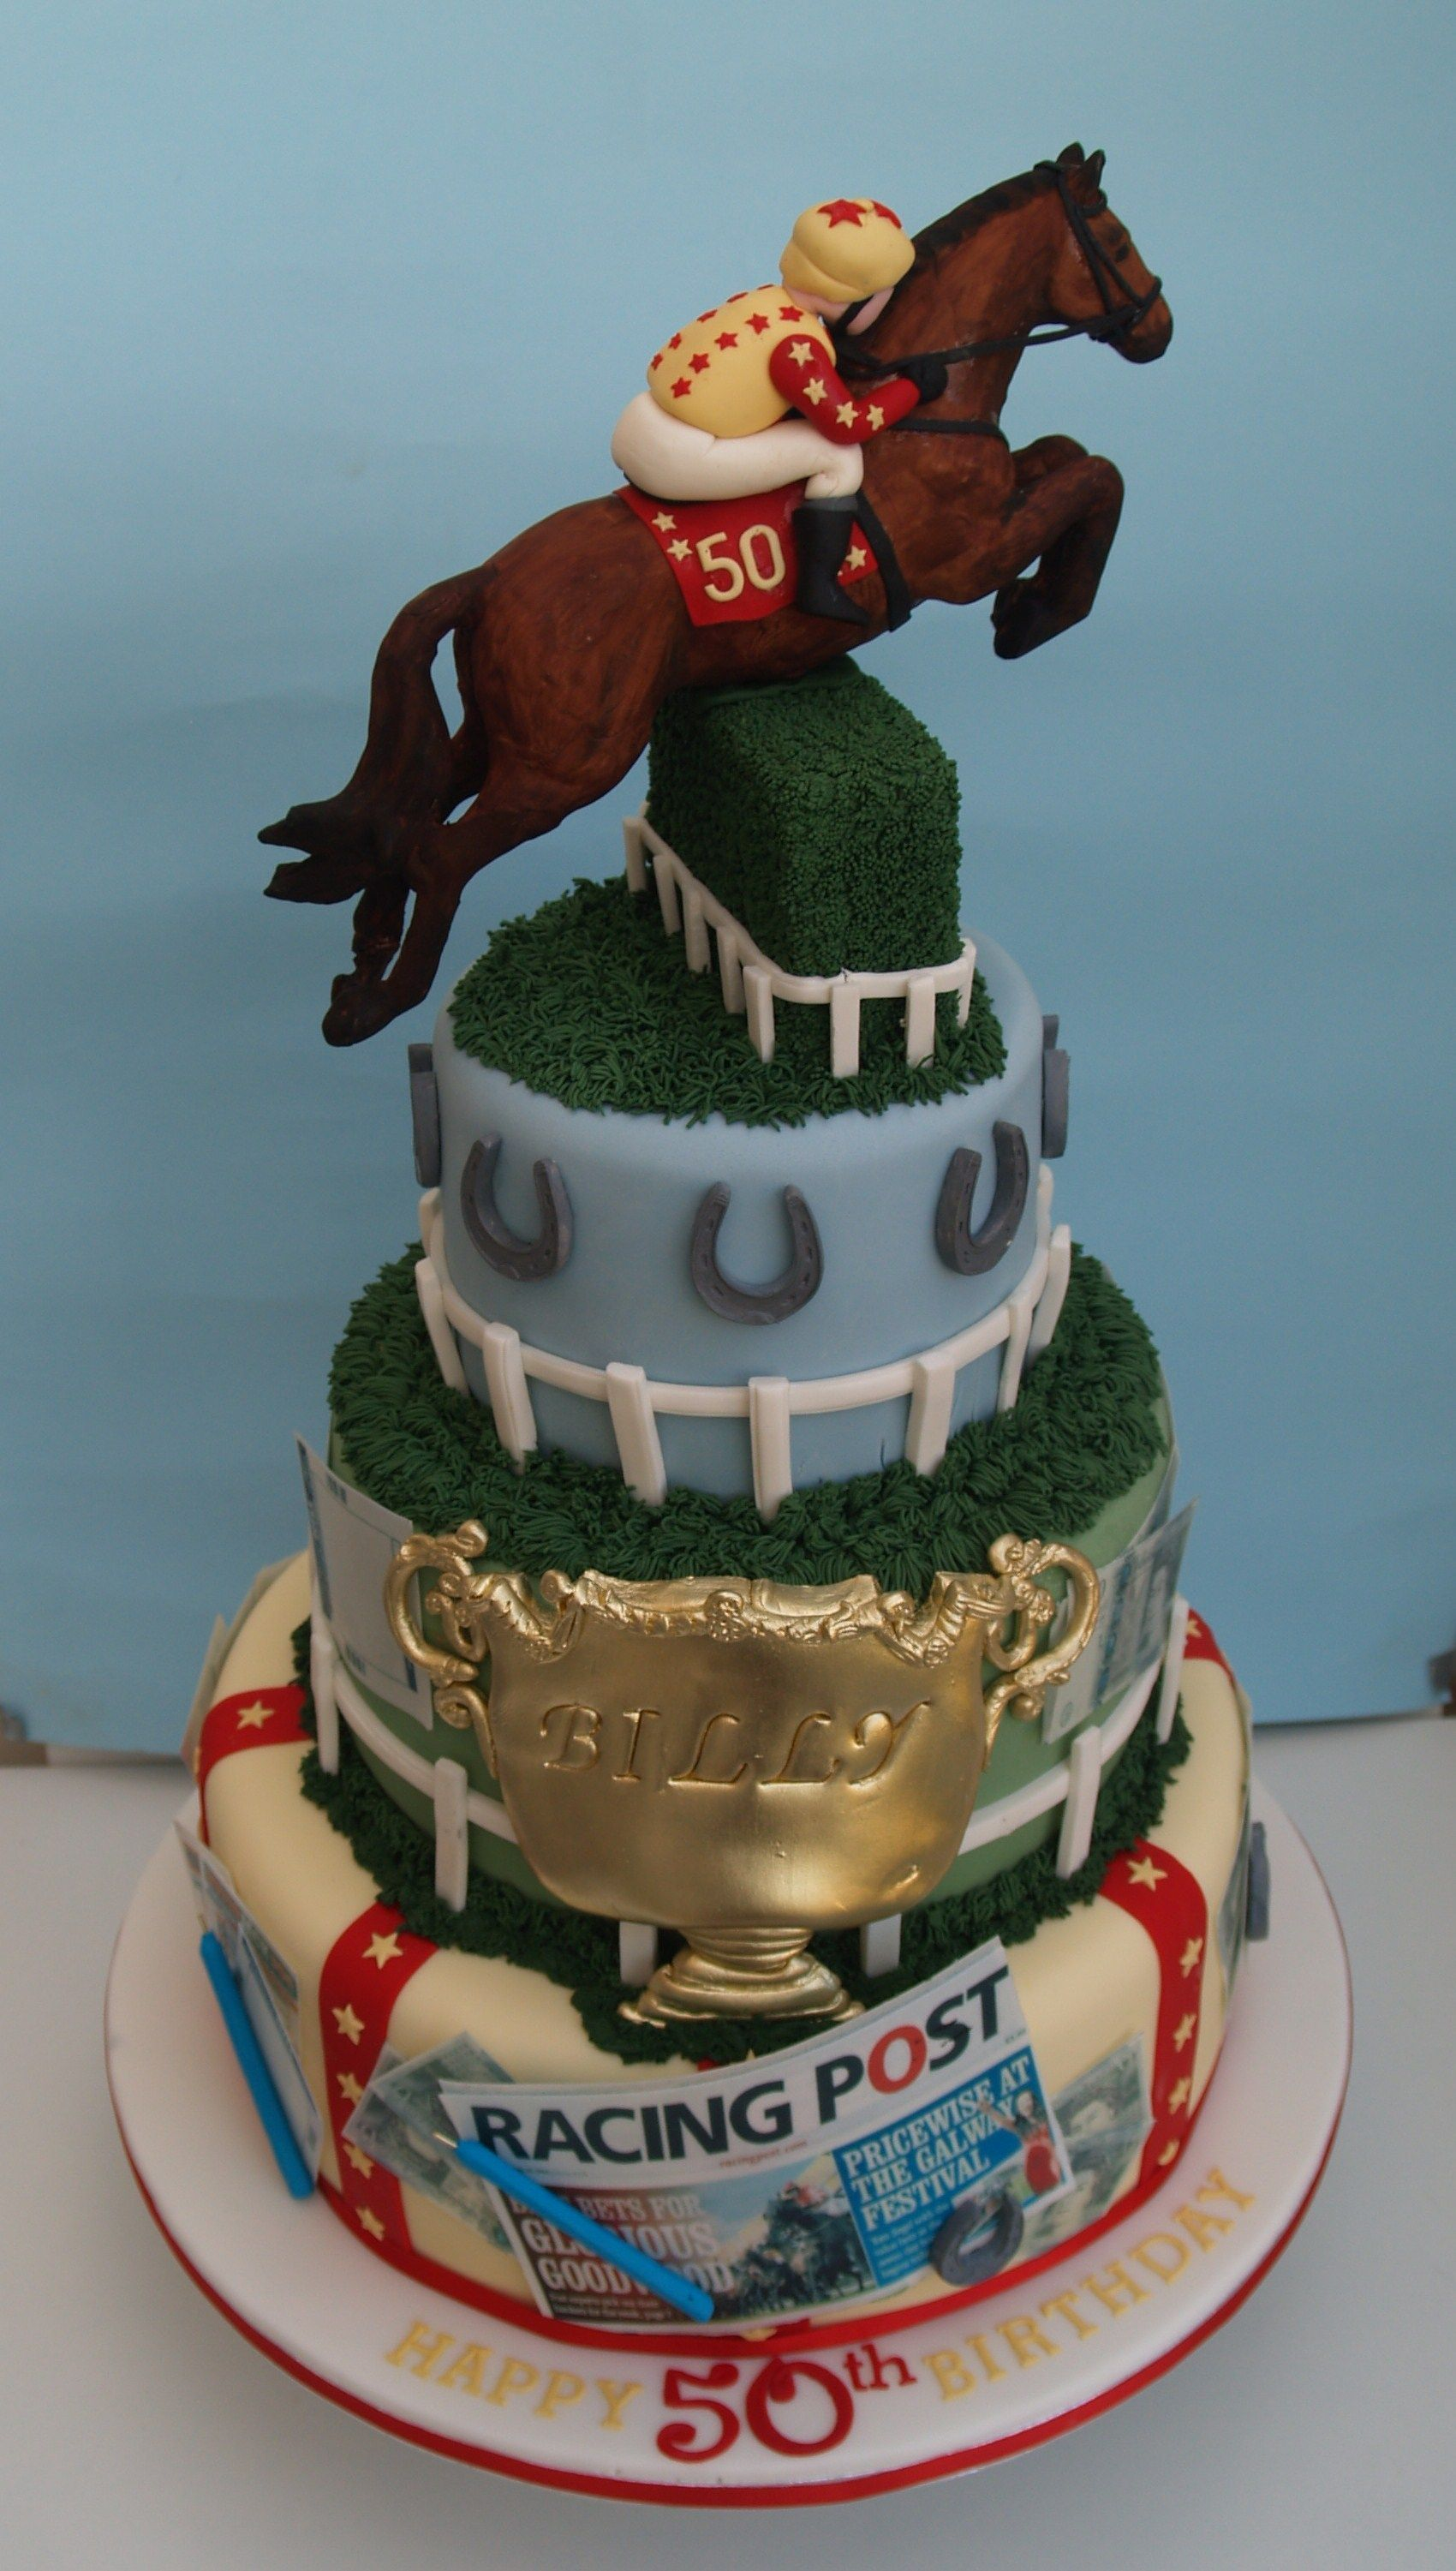 Cowboy cake decorations racing cake birthday cakes for